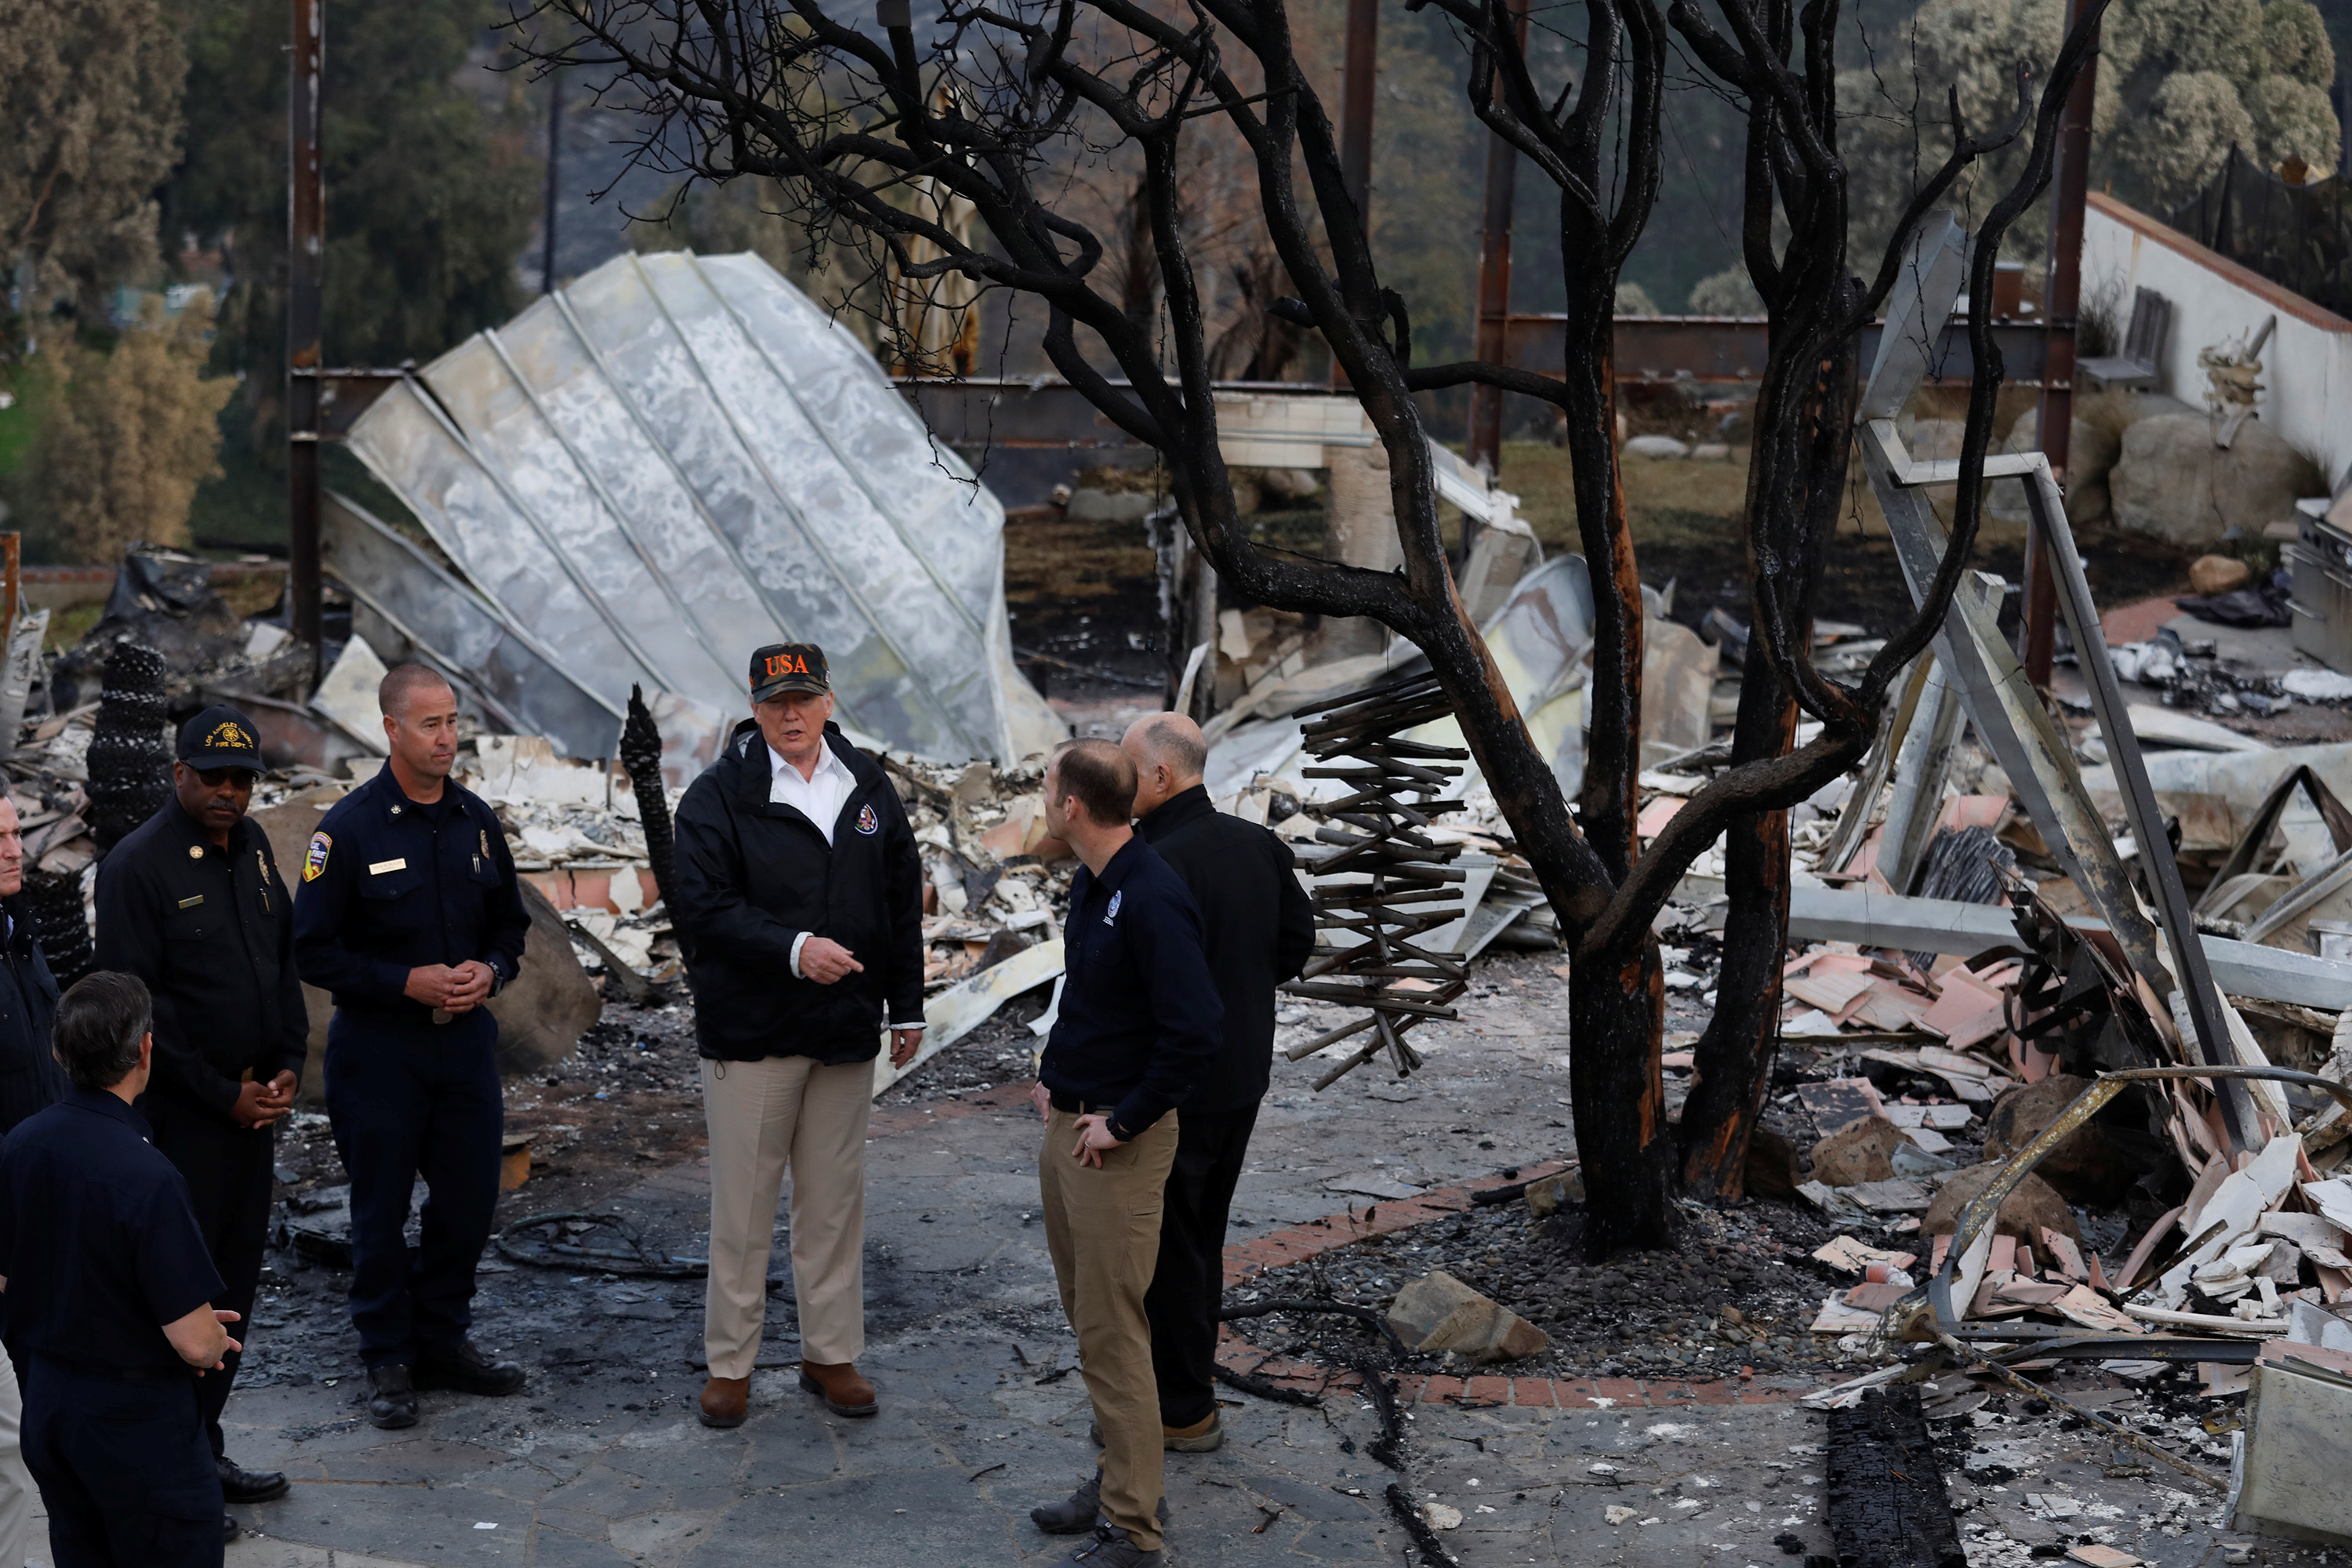 U.S. President Donald Trump (C) surveys homes destroyed by the Woolsey fire with first responders in Malibu, California, U.S., November 17, 2018. Picture taken on November 17, 2018. Genaro Molina/Los Angeles Times/Pool via REUTERS